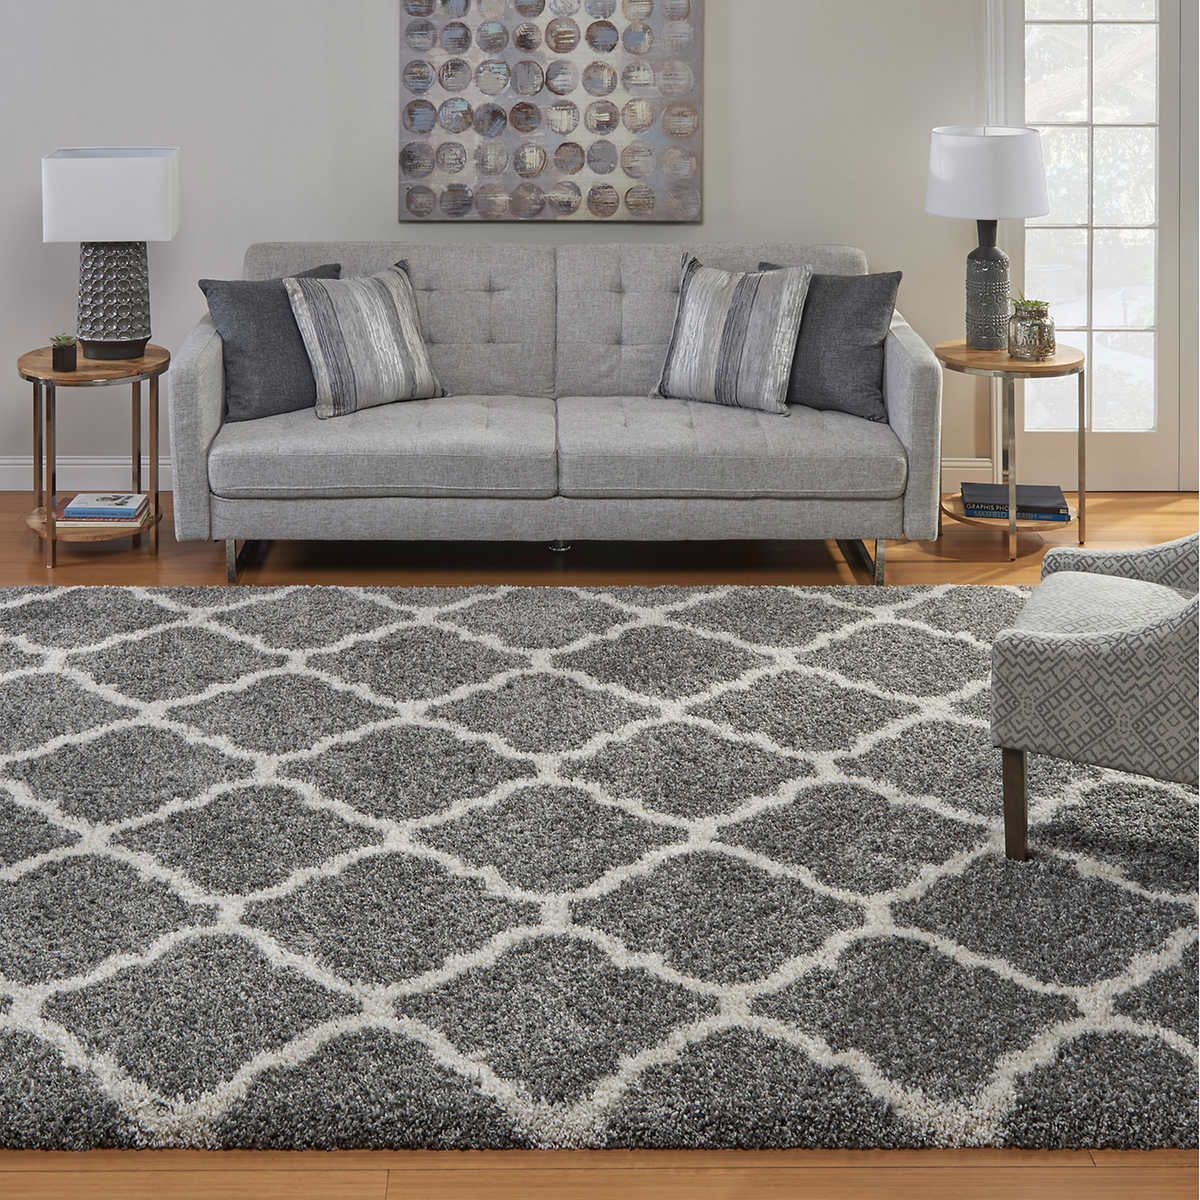 Thomasville Marketplace Rocca 55 Luxury Shag Rug Family Room